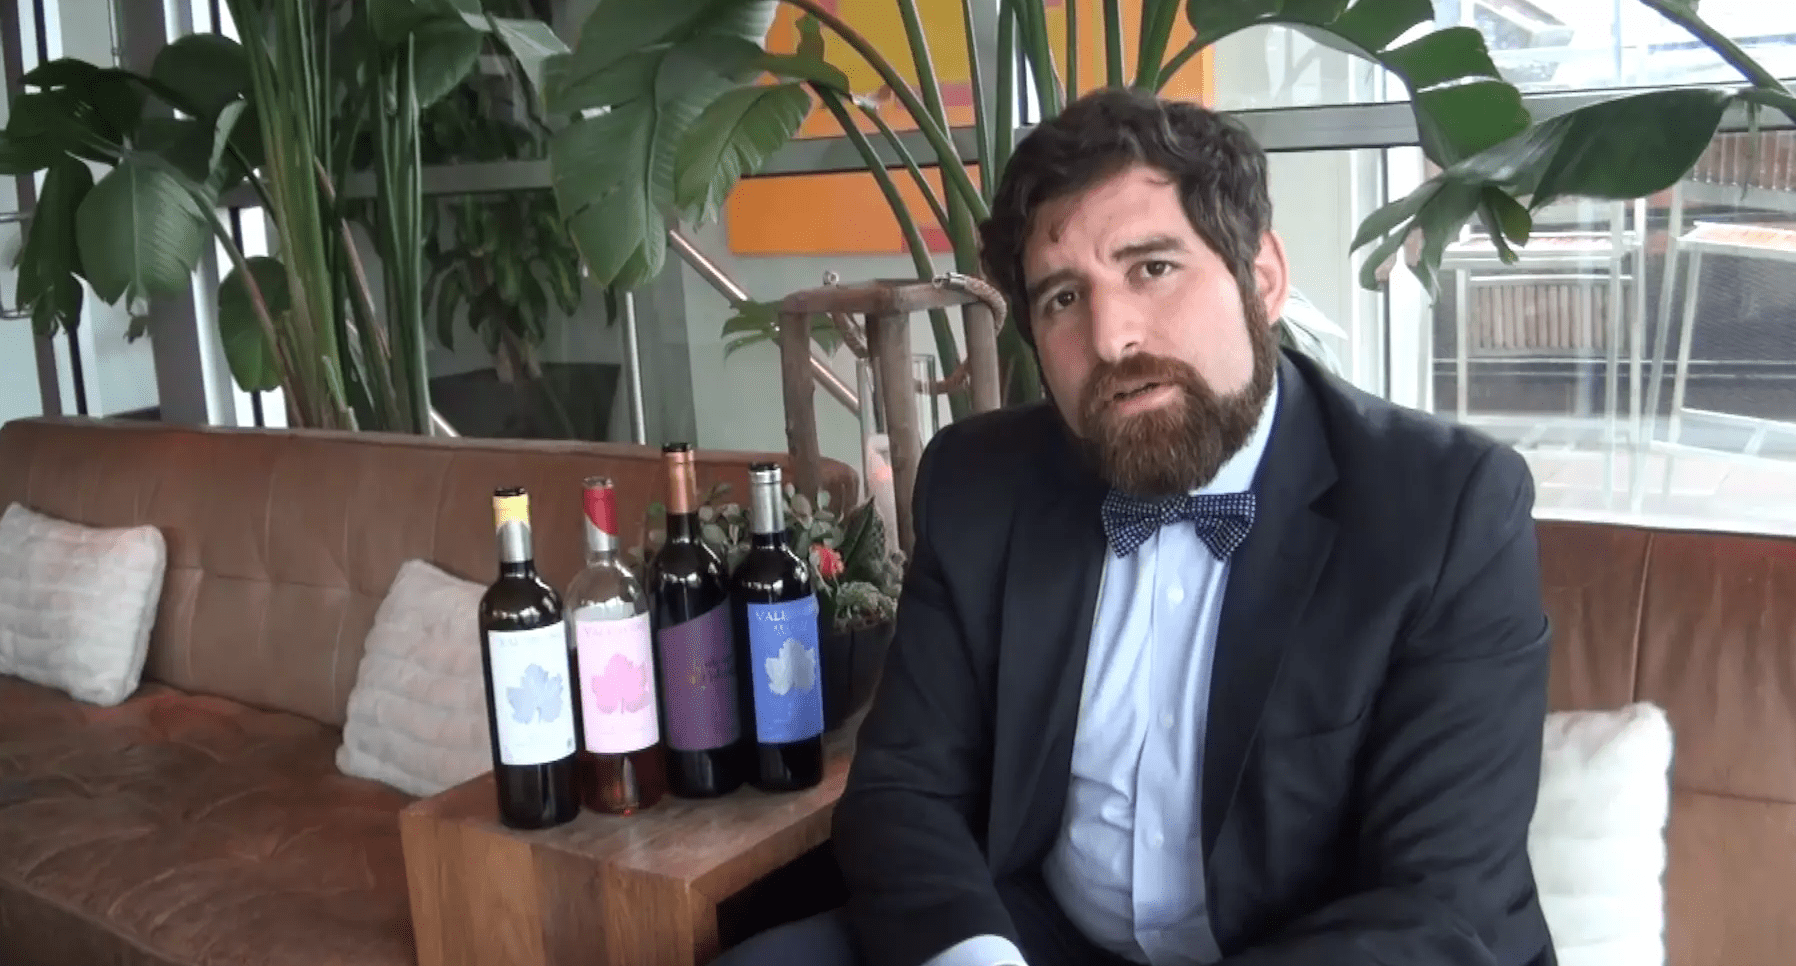 Diego Santana from Bodegas Valenciso explains why he find Rioja, on the whole, to be a little behind with the times.